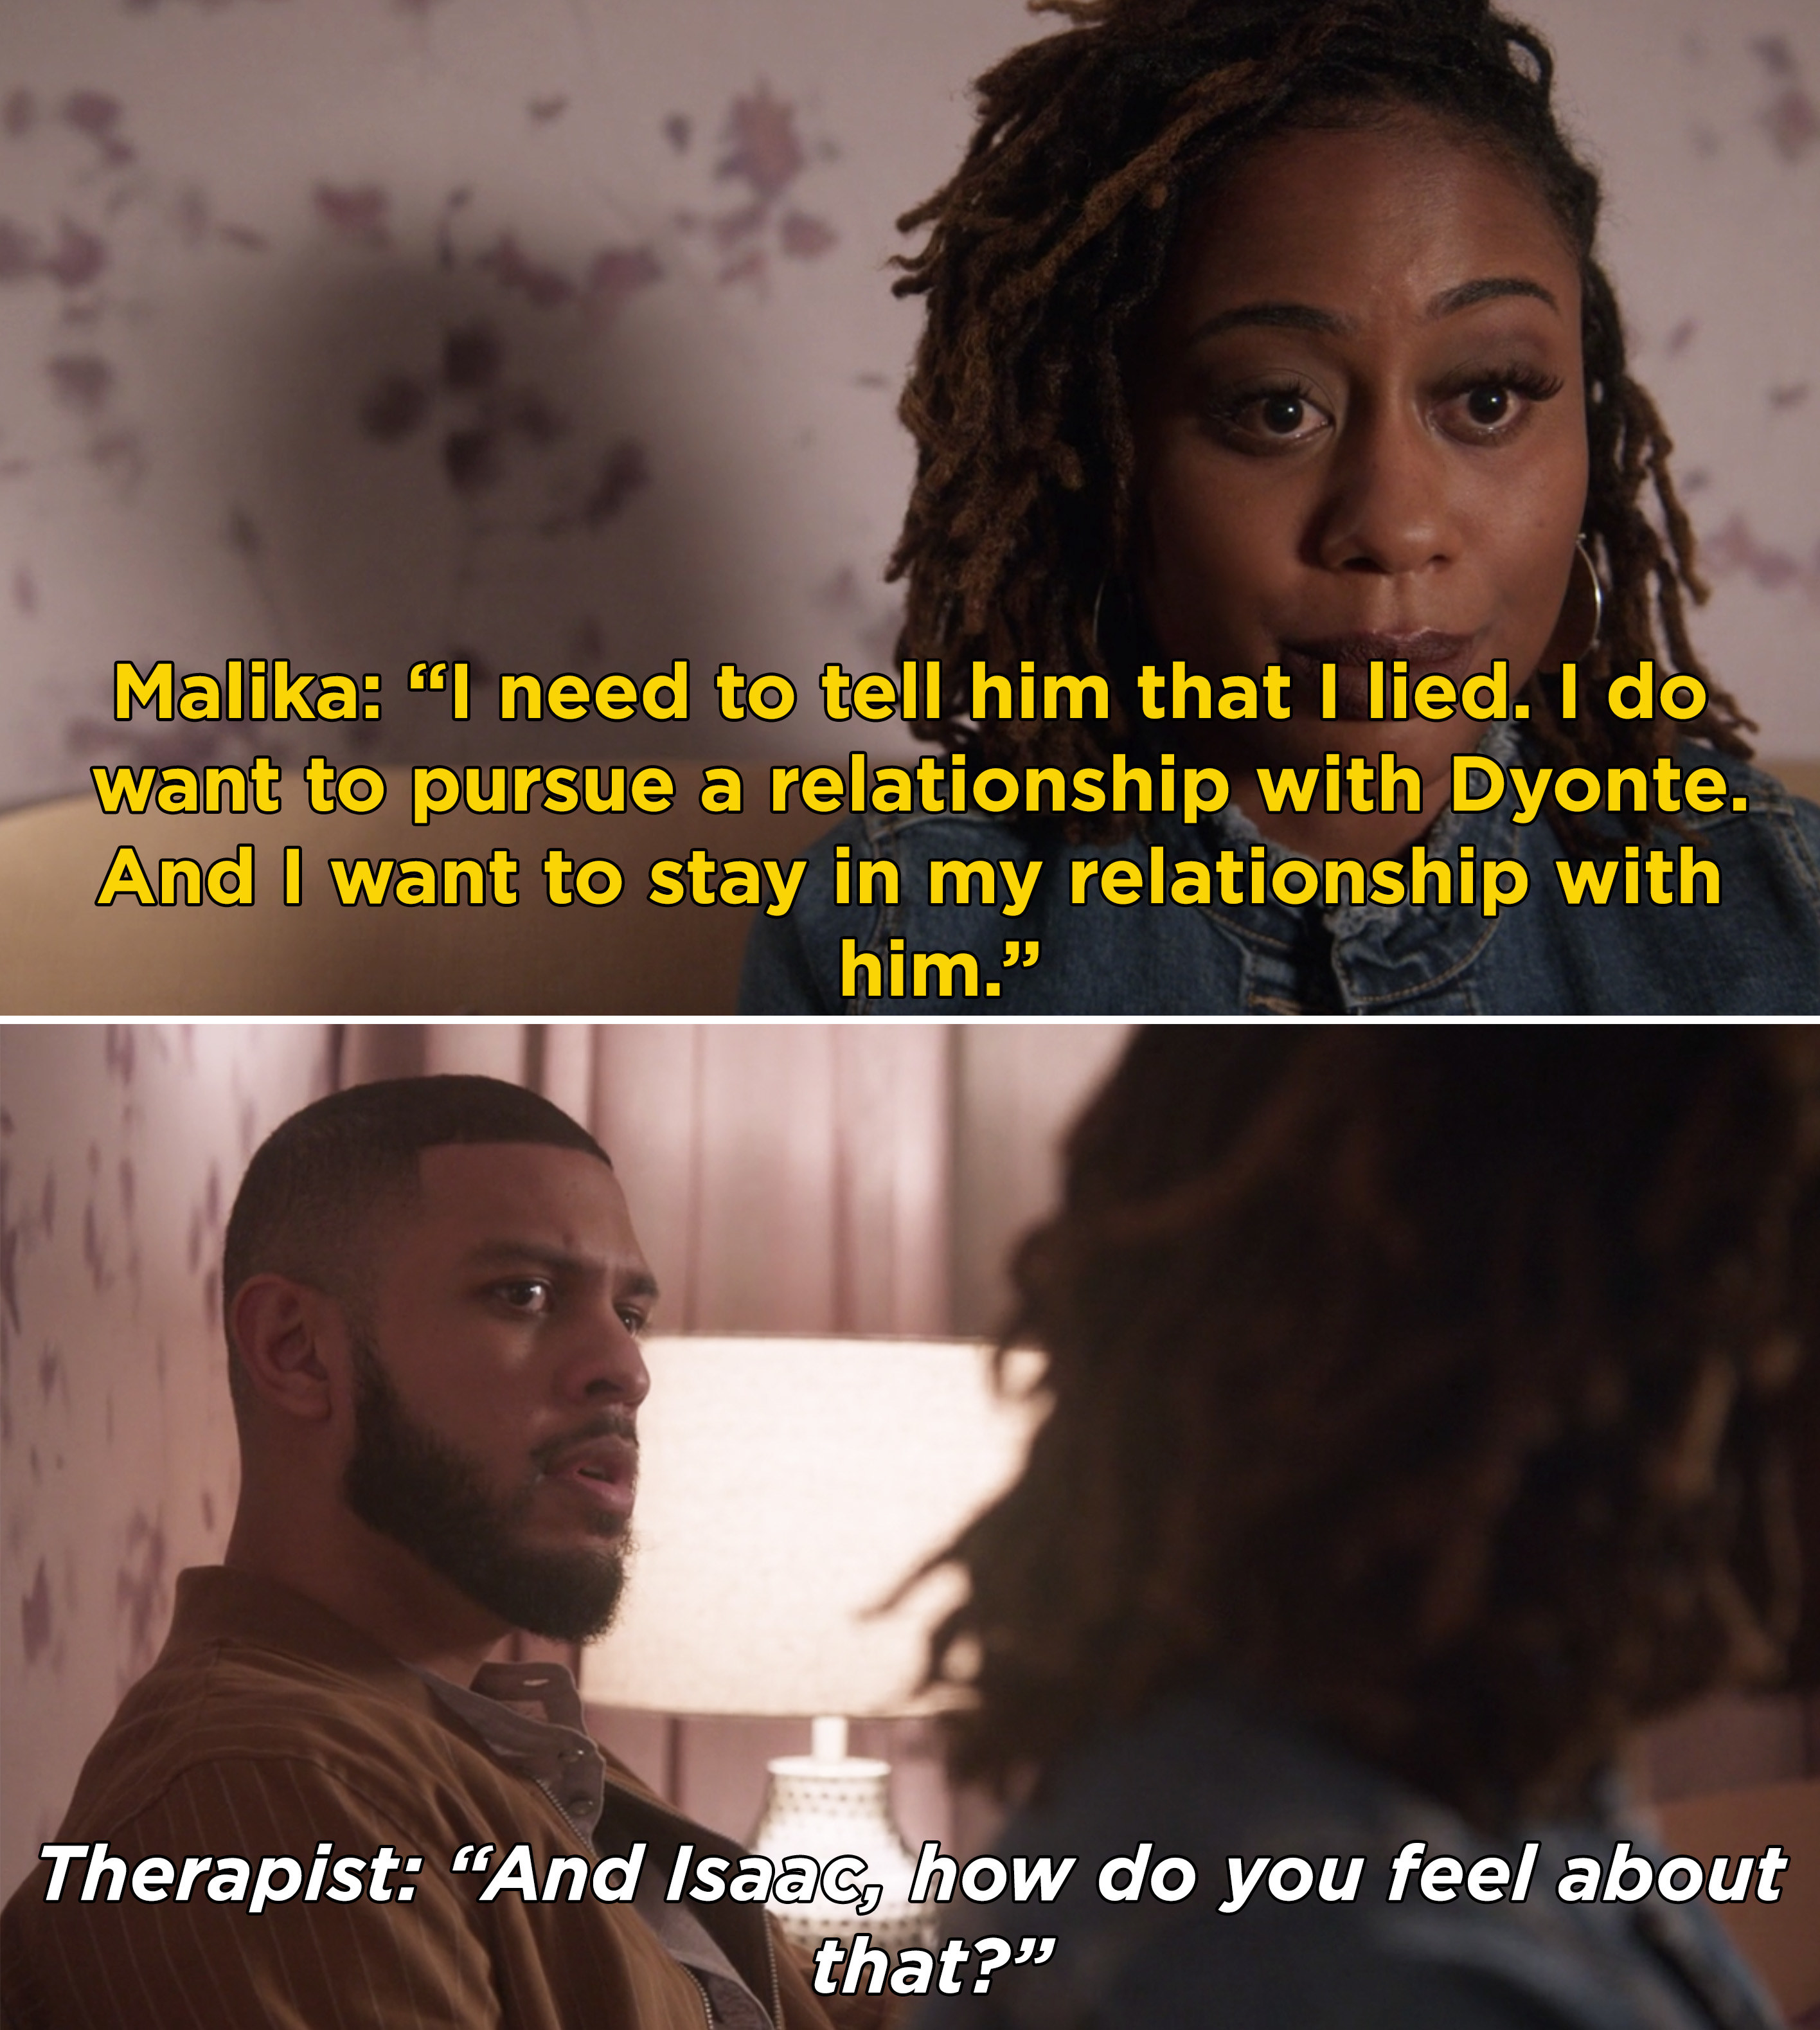 Malika saying she wants to pursue a relationship with Dyonte, but keep her relationship with Isaac, and Isaac looking stunned